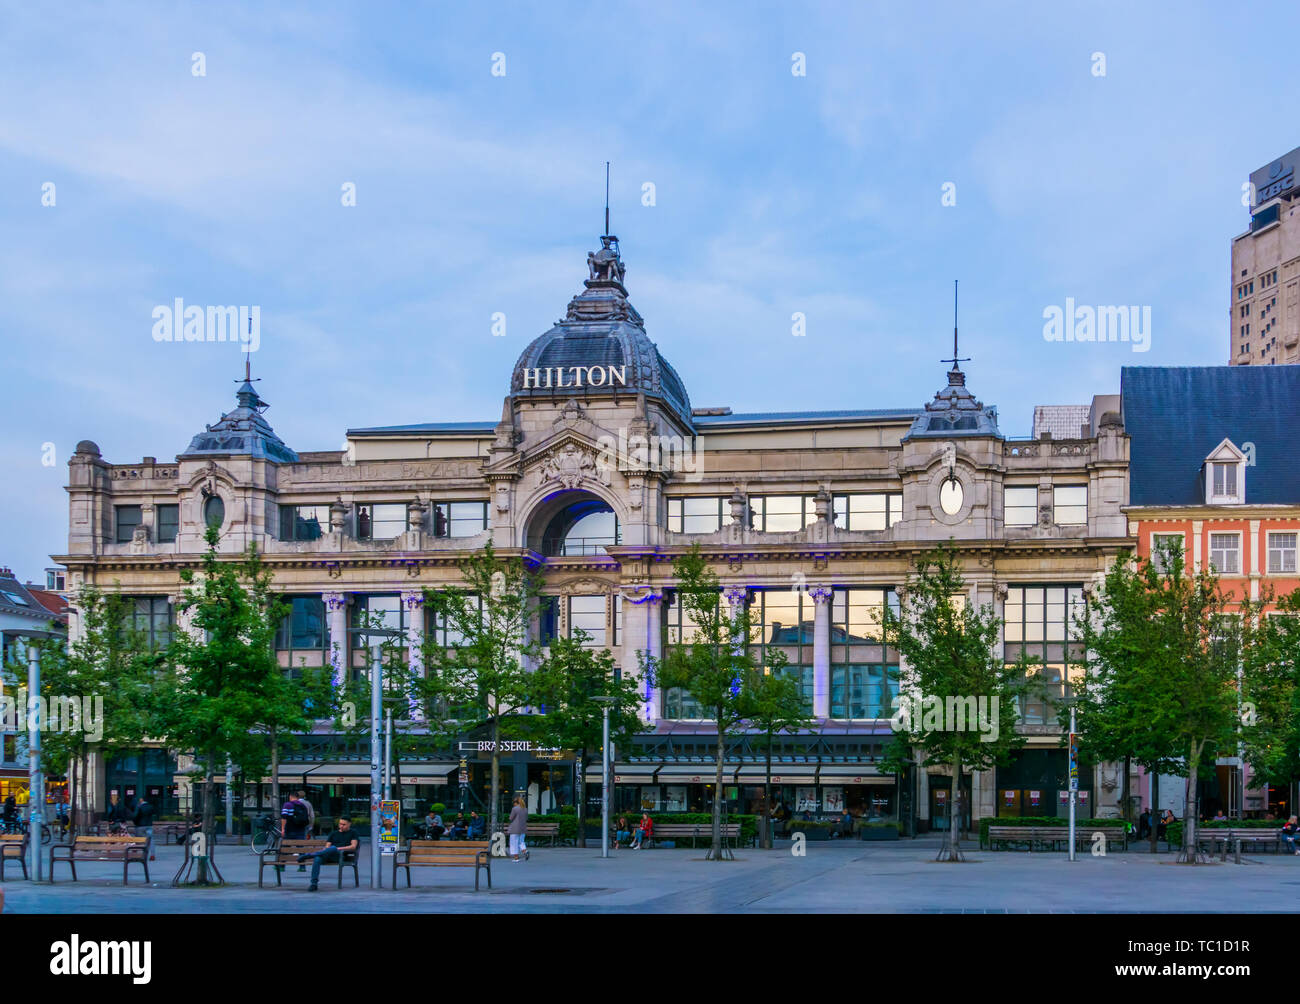 The Front Of The Hilton Hotel In Antwerp City World Wide Popular Hotel Chain Antwerpen Belgium April 23 2019 Stock Photo Alamy